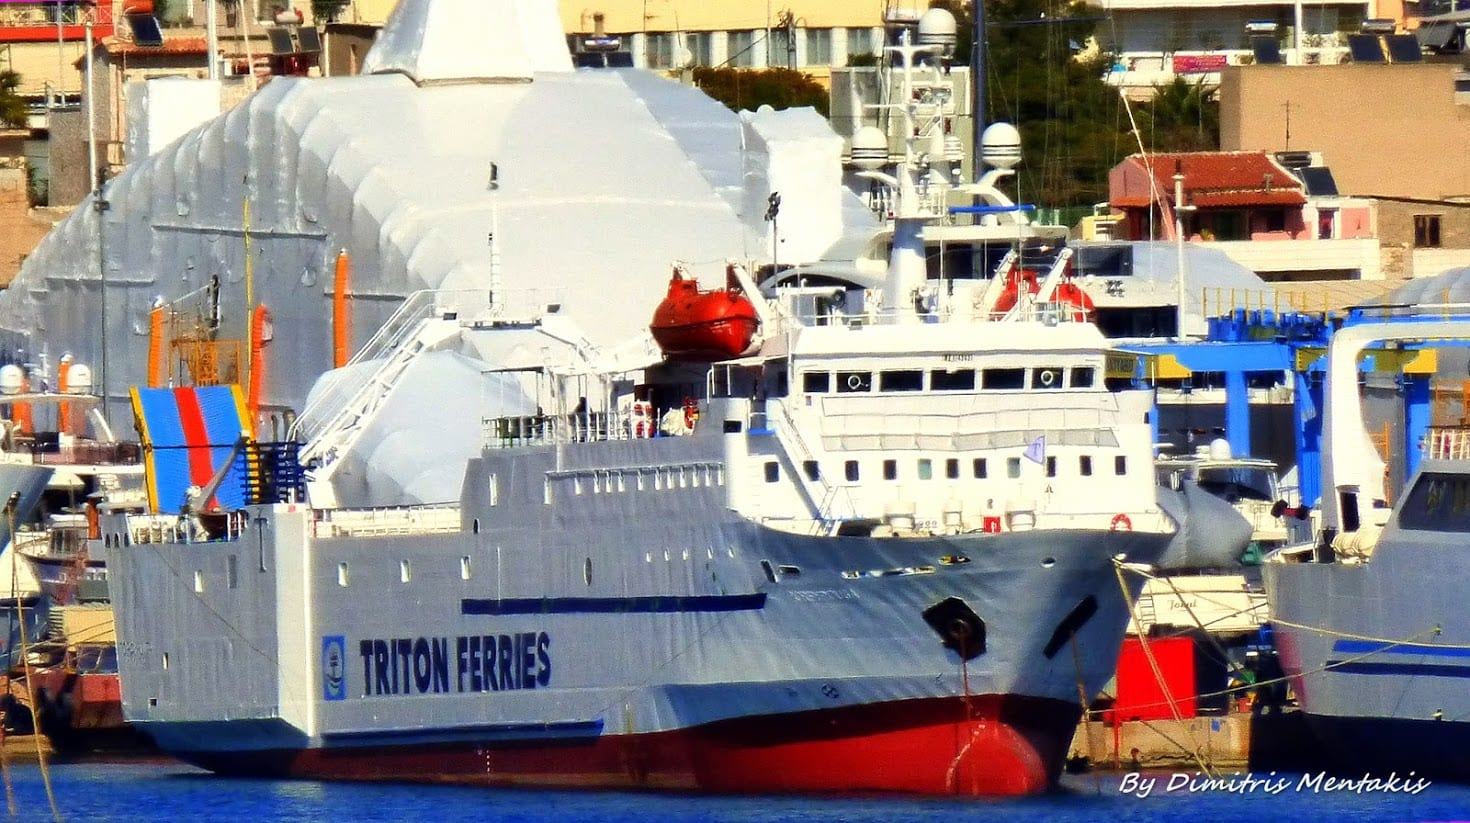 Triton Ferries Greece